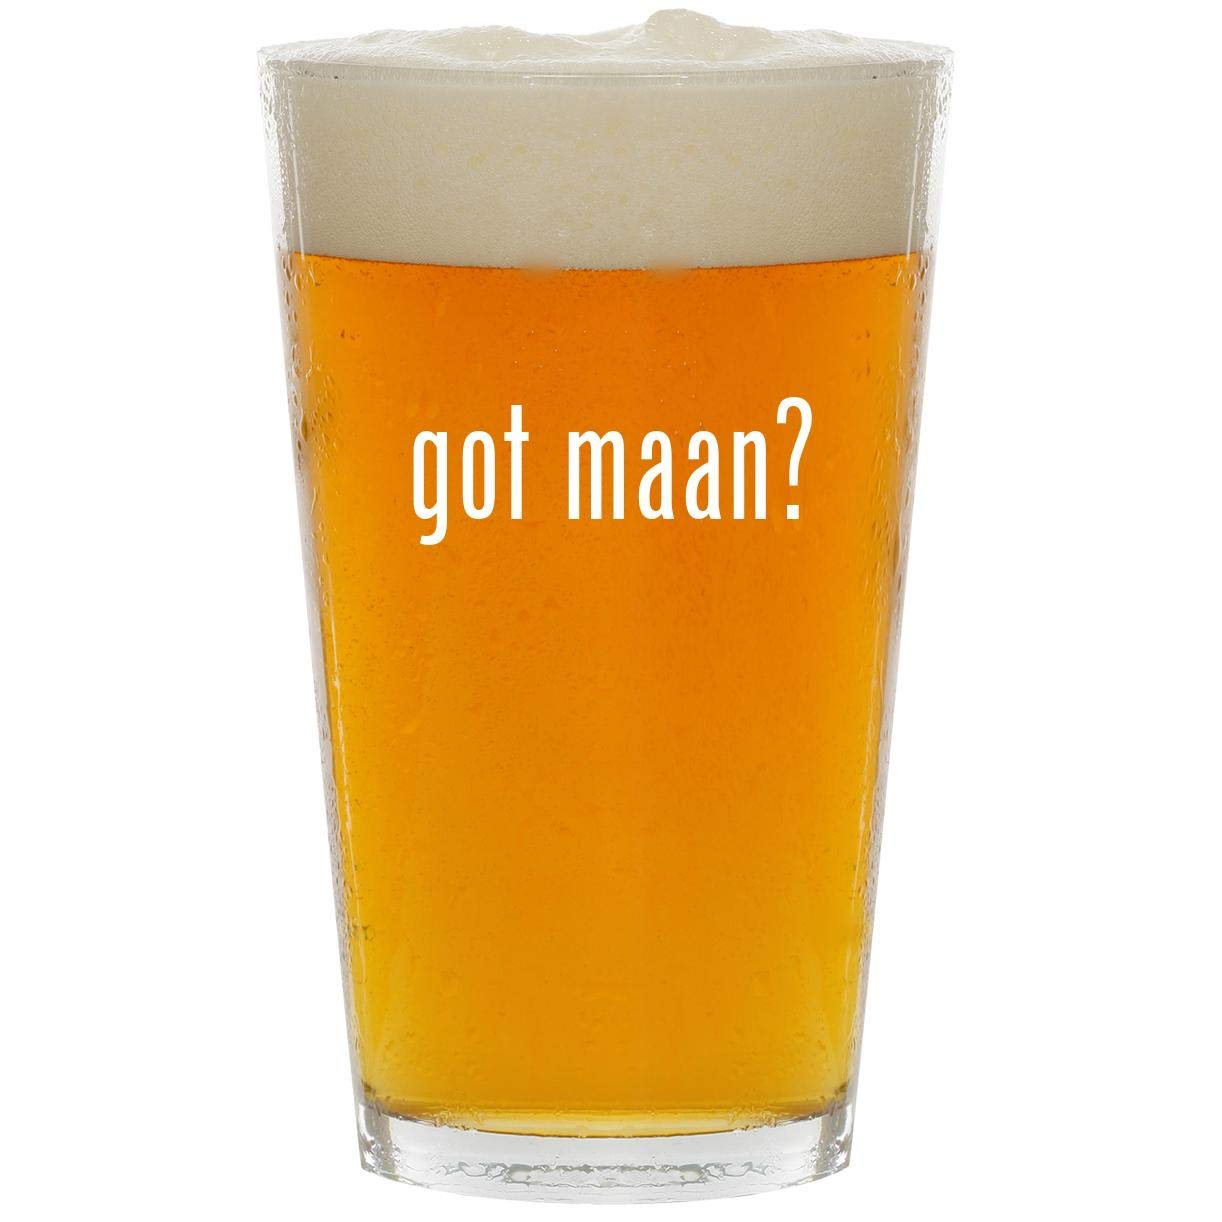 got maan? - Glass 16oz Beer Pint by Molandra Products